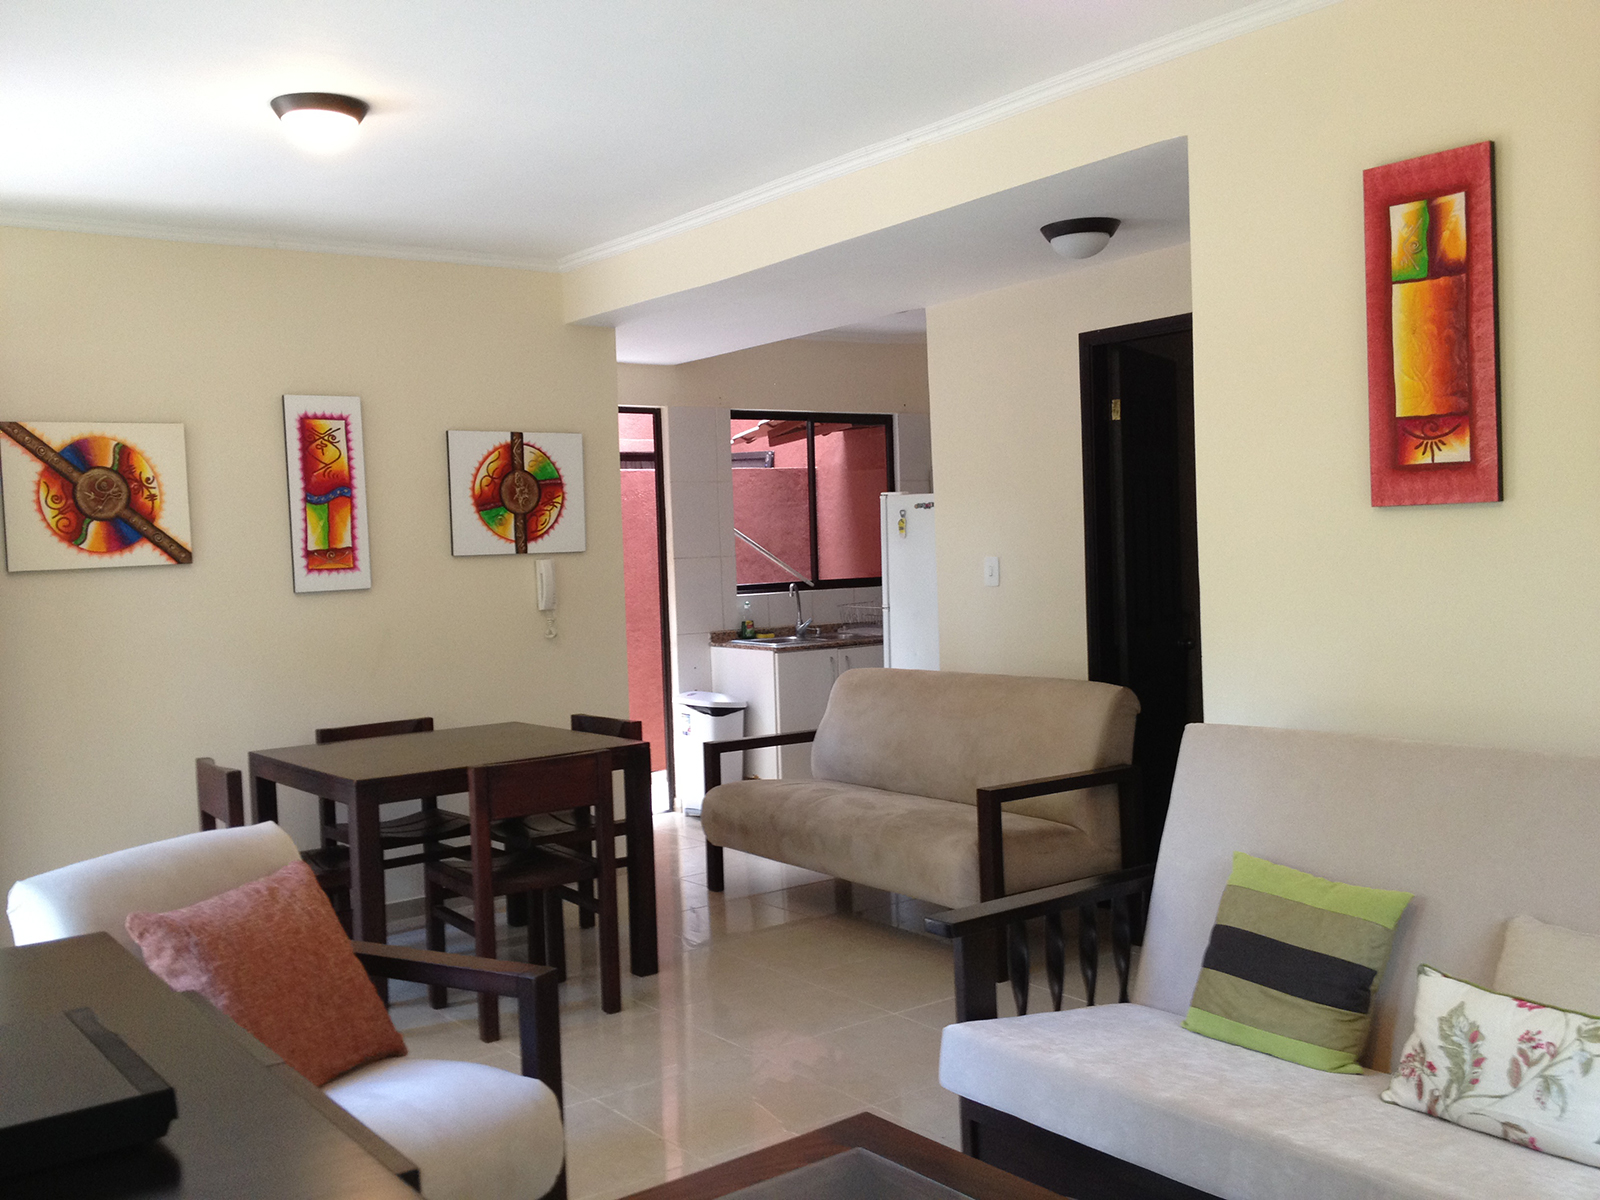 Condos, North Pacific, Guanacaste, For Sale, Affordable, One Bedroom, ...